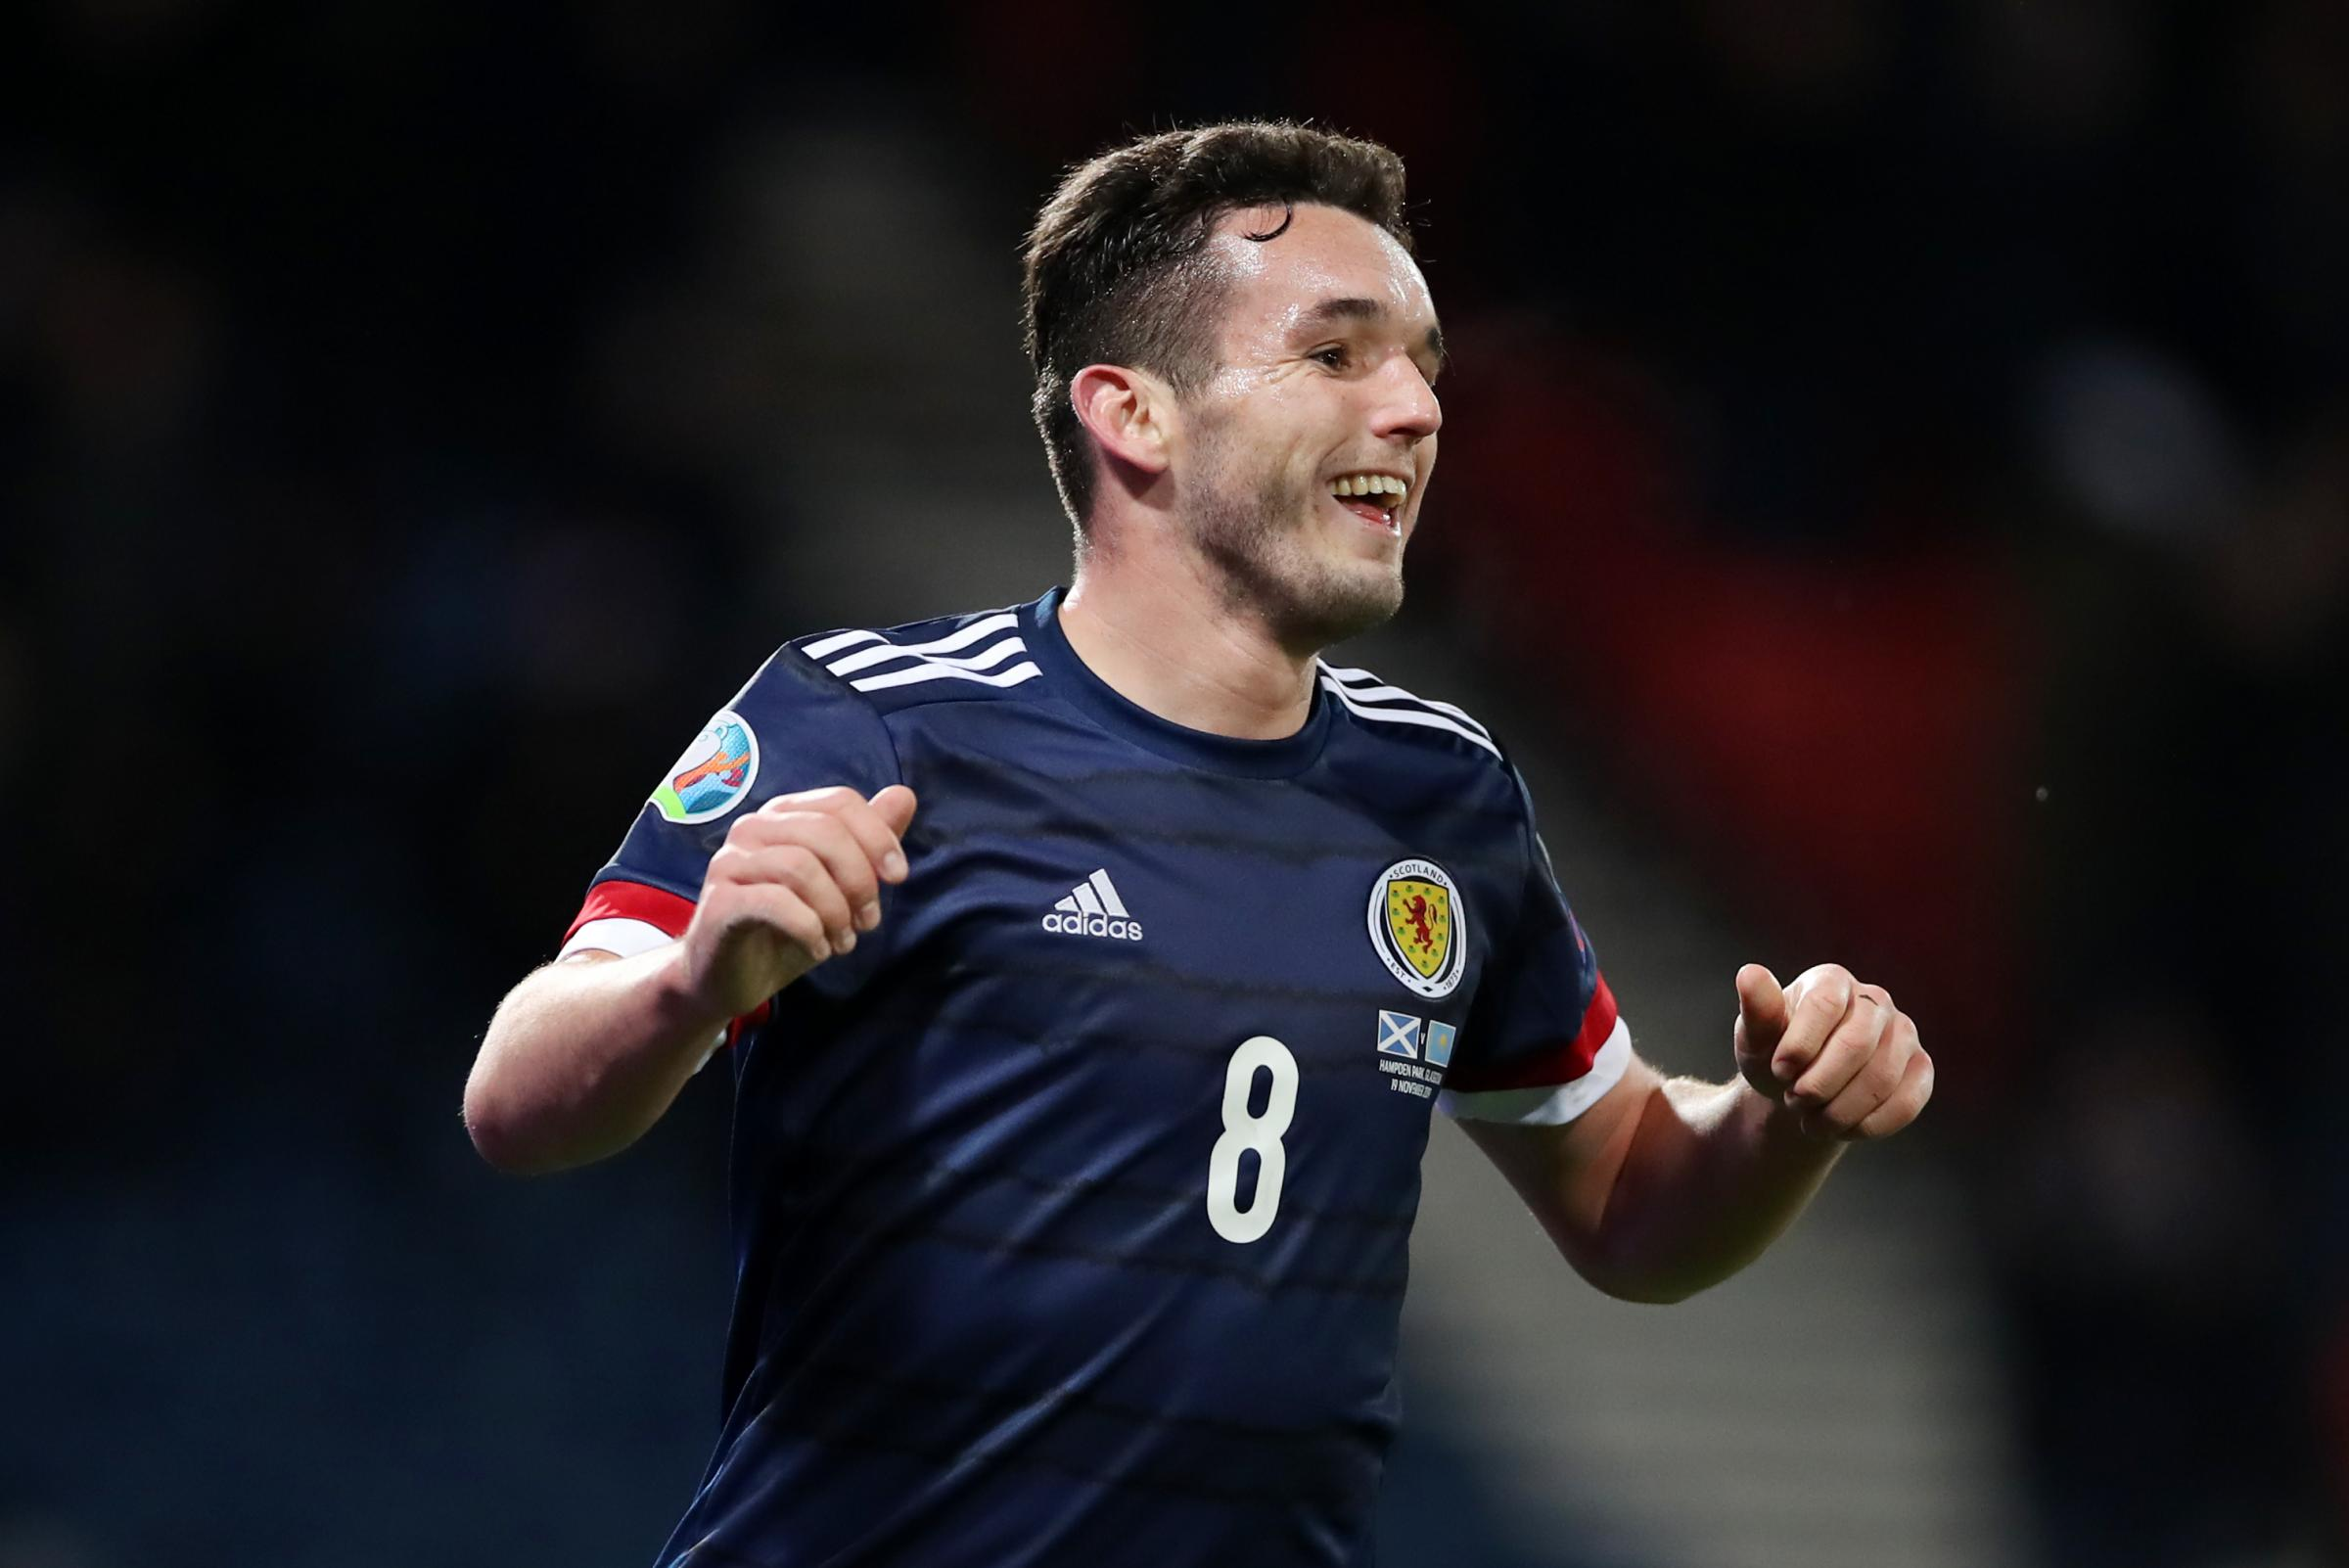 John McGinn the benchmark for Hibs' production line of talent, insists sporting director Mathie